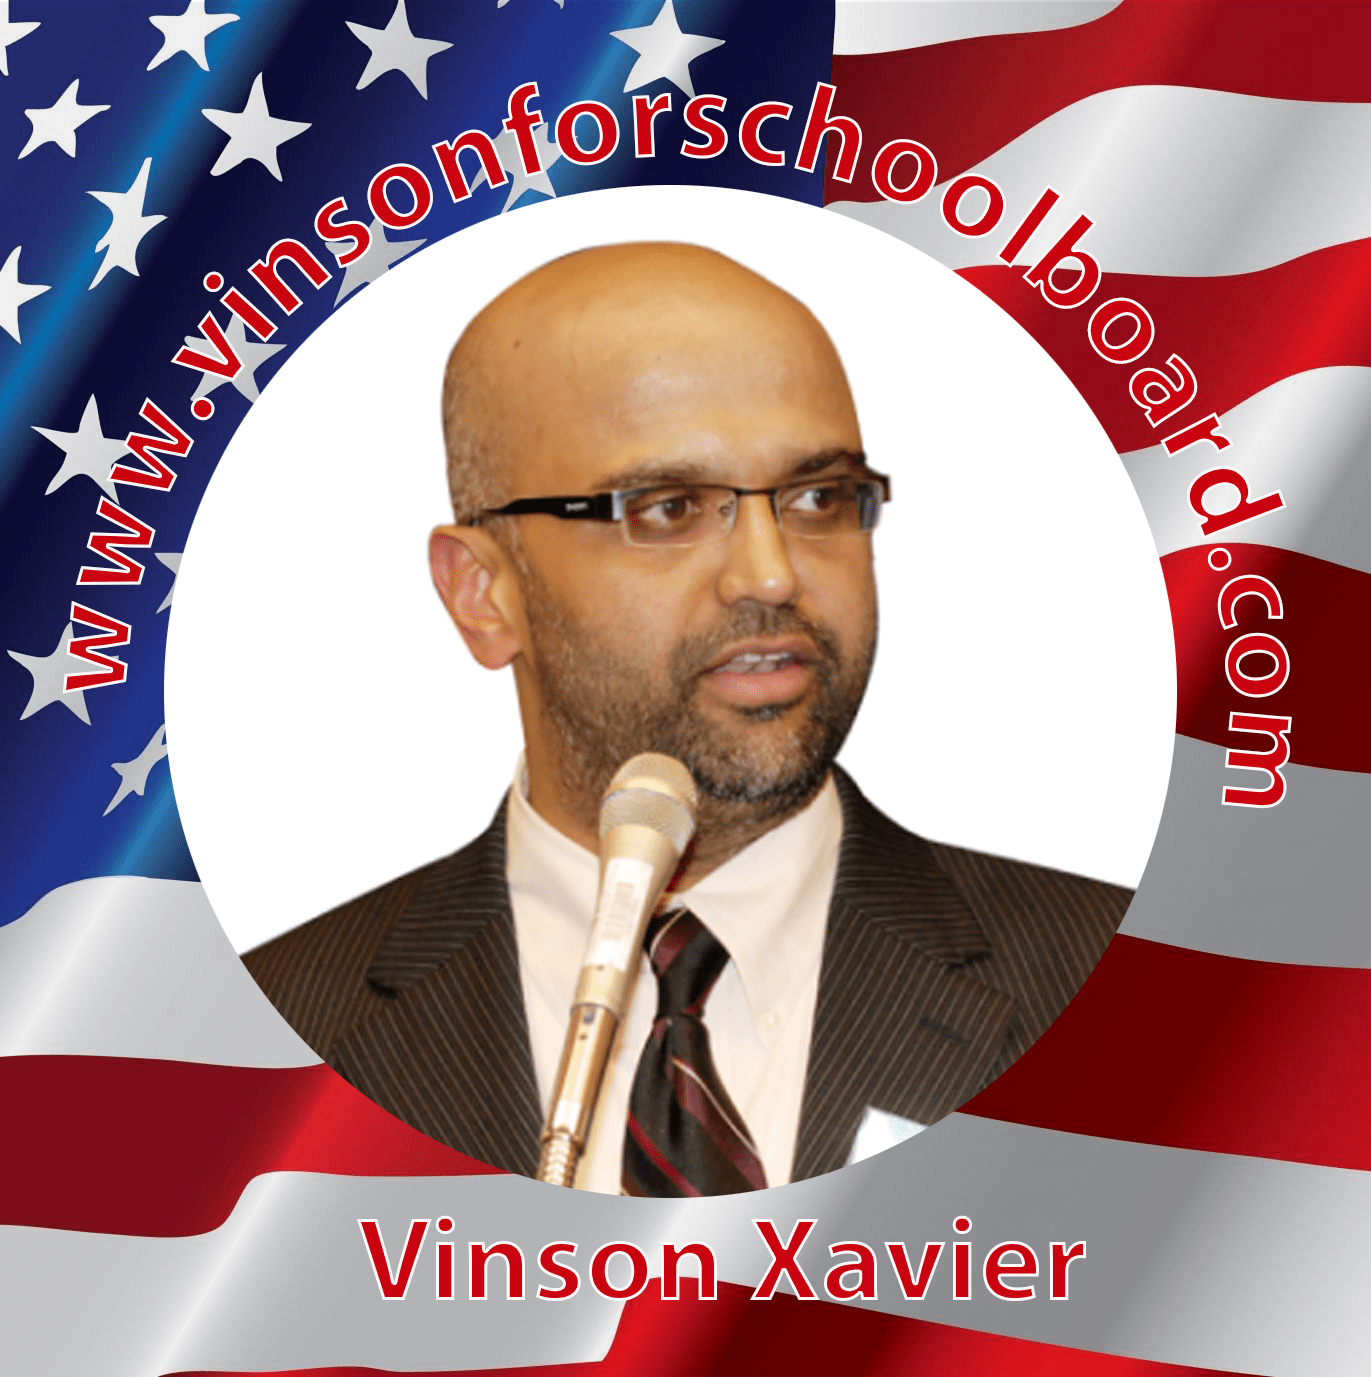 Vinson Palathingal - Fairfax County School Board Election Candidate 2019 November 5th